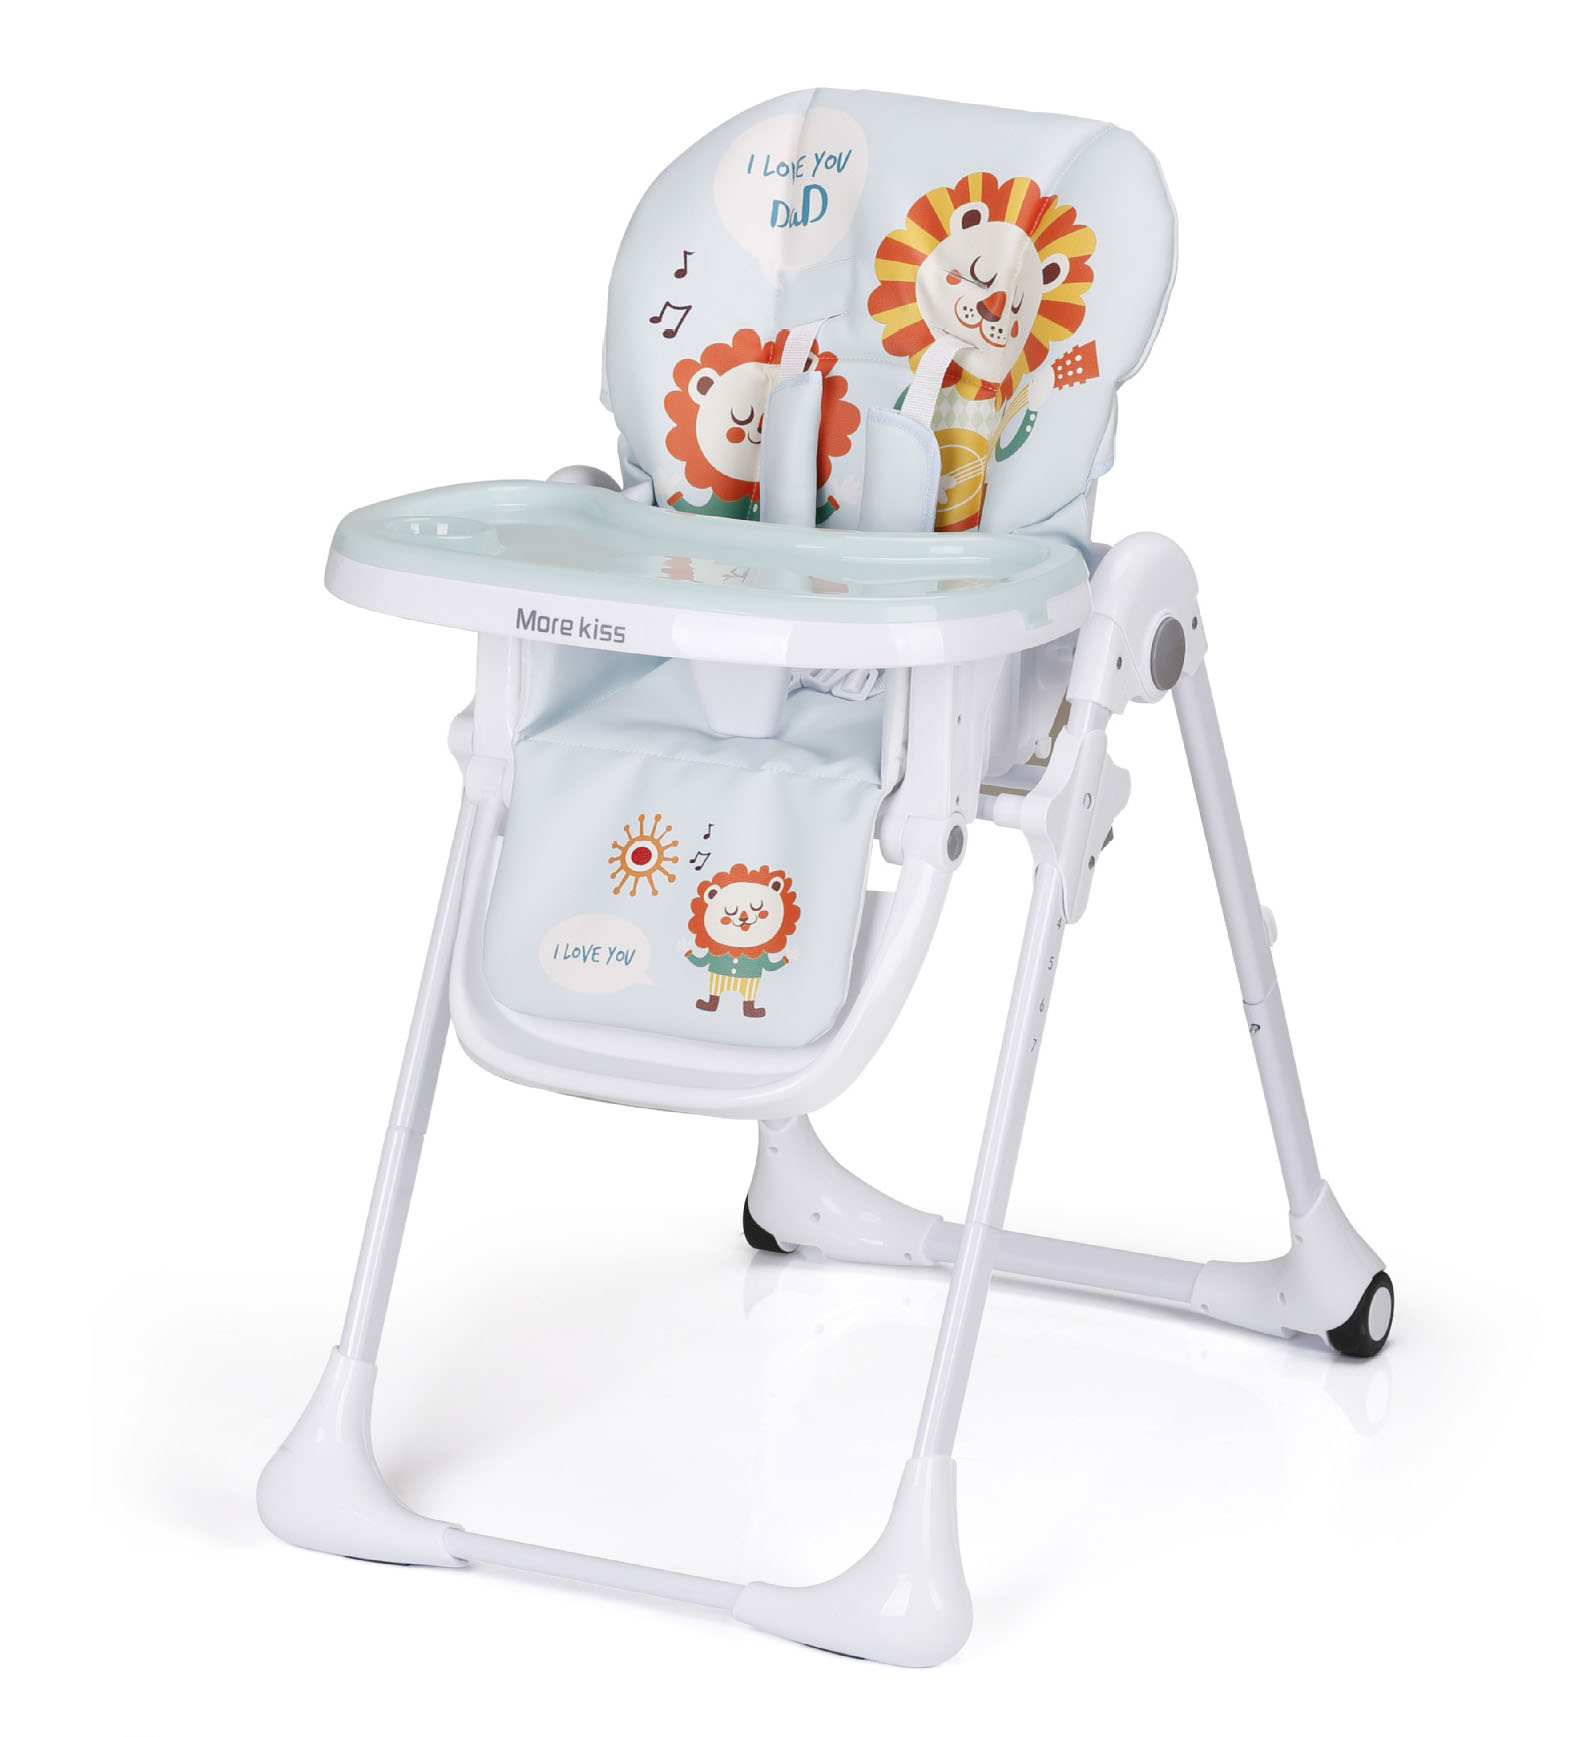 Harari Baby adjustable boys high chair Suppliers for older baby-1